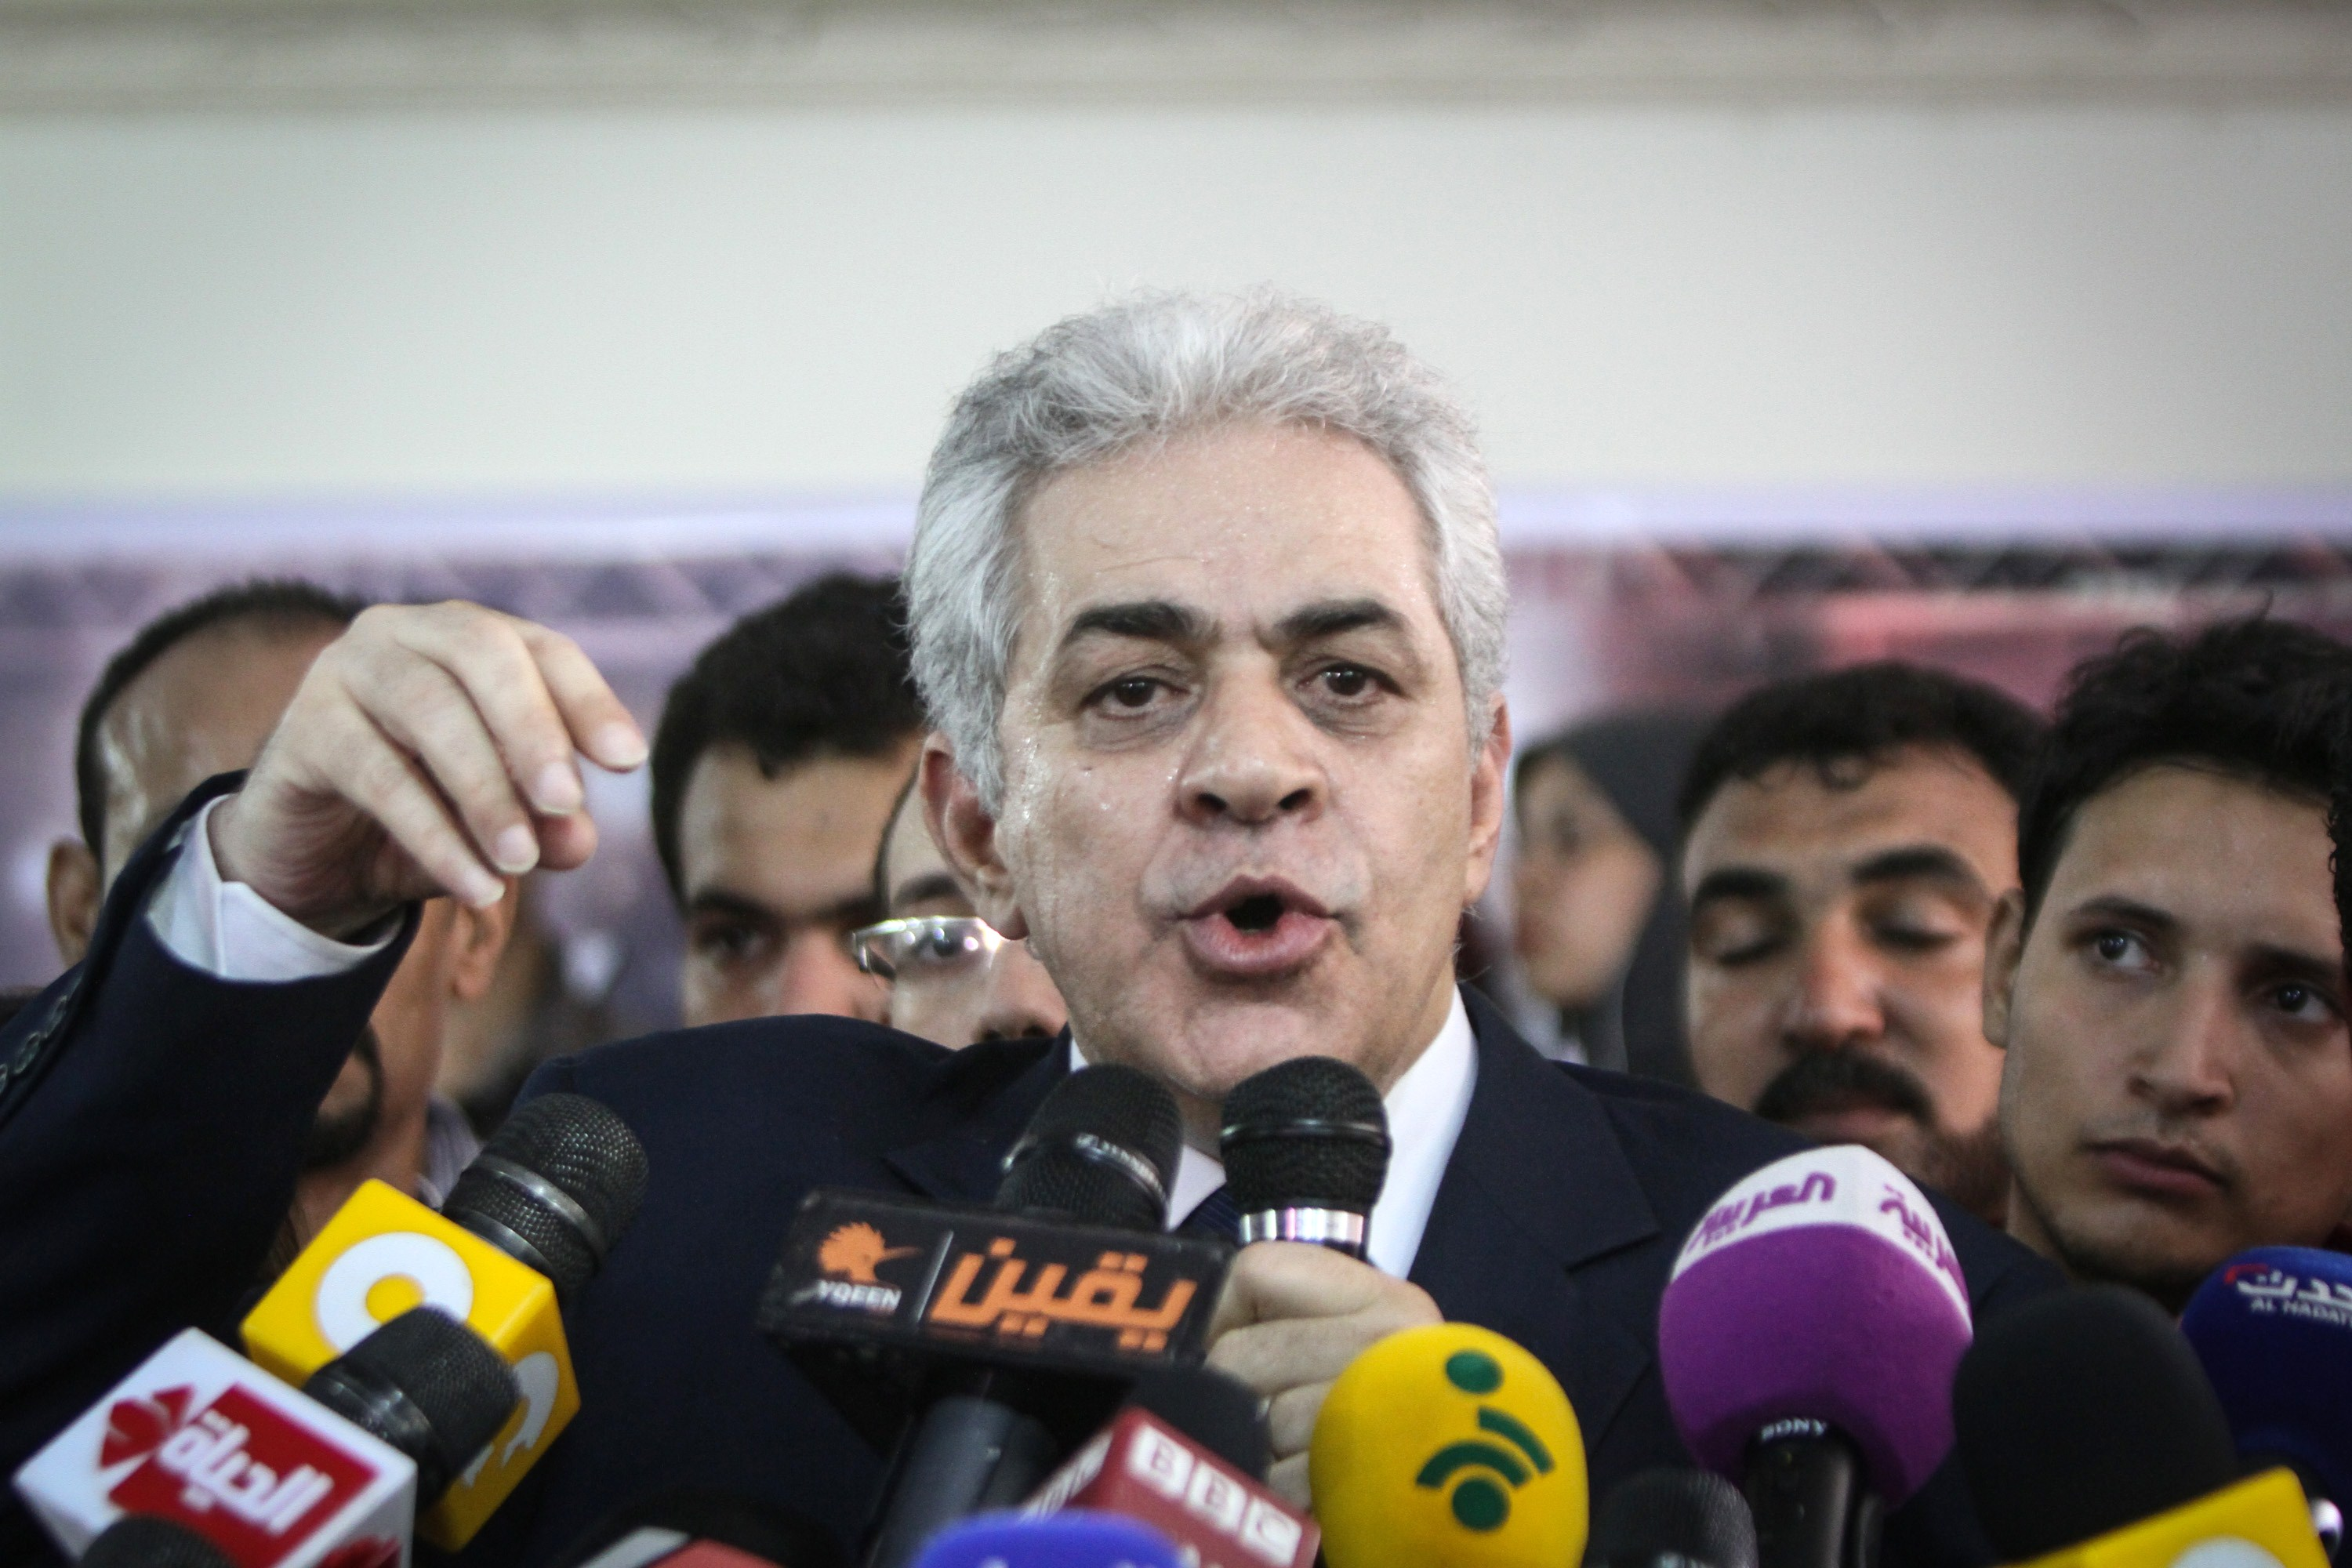 "Egyptian former leftist presidential candidate Hamdeen Sabbahi speaks during a press conference after preliminary results from Egypt's presidential election gave ex-army chief Abdel Fattah al-Sisi 96 percent of the vote on May 29, 2014 in the capital Cairo. Speaking at a news conference, Sabbahi said ""I accept my defeat and respect the people's choice"" in the three-day election that ended on May 29.     (AFP PHOTO / MOHAMED EL-SHAHED)"